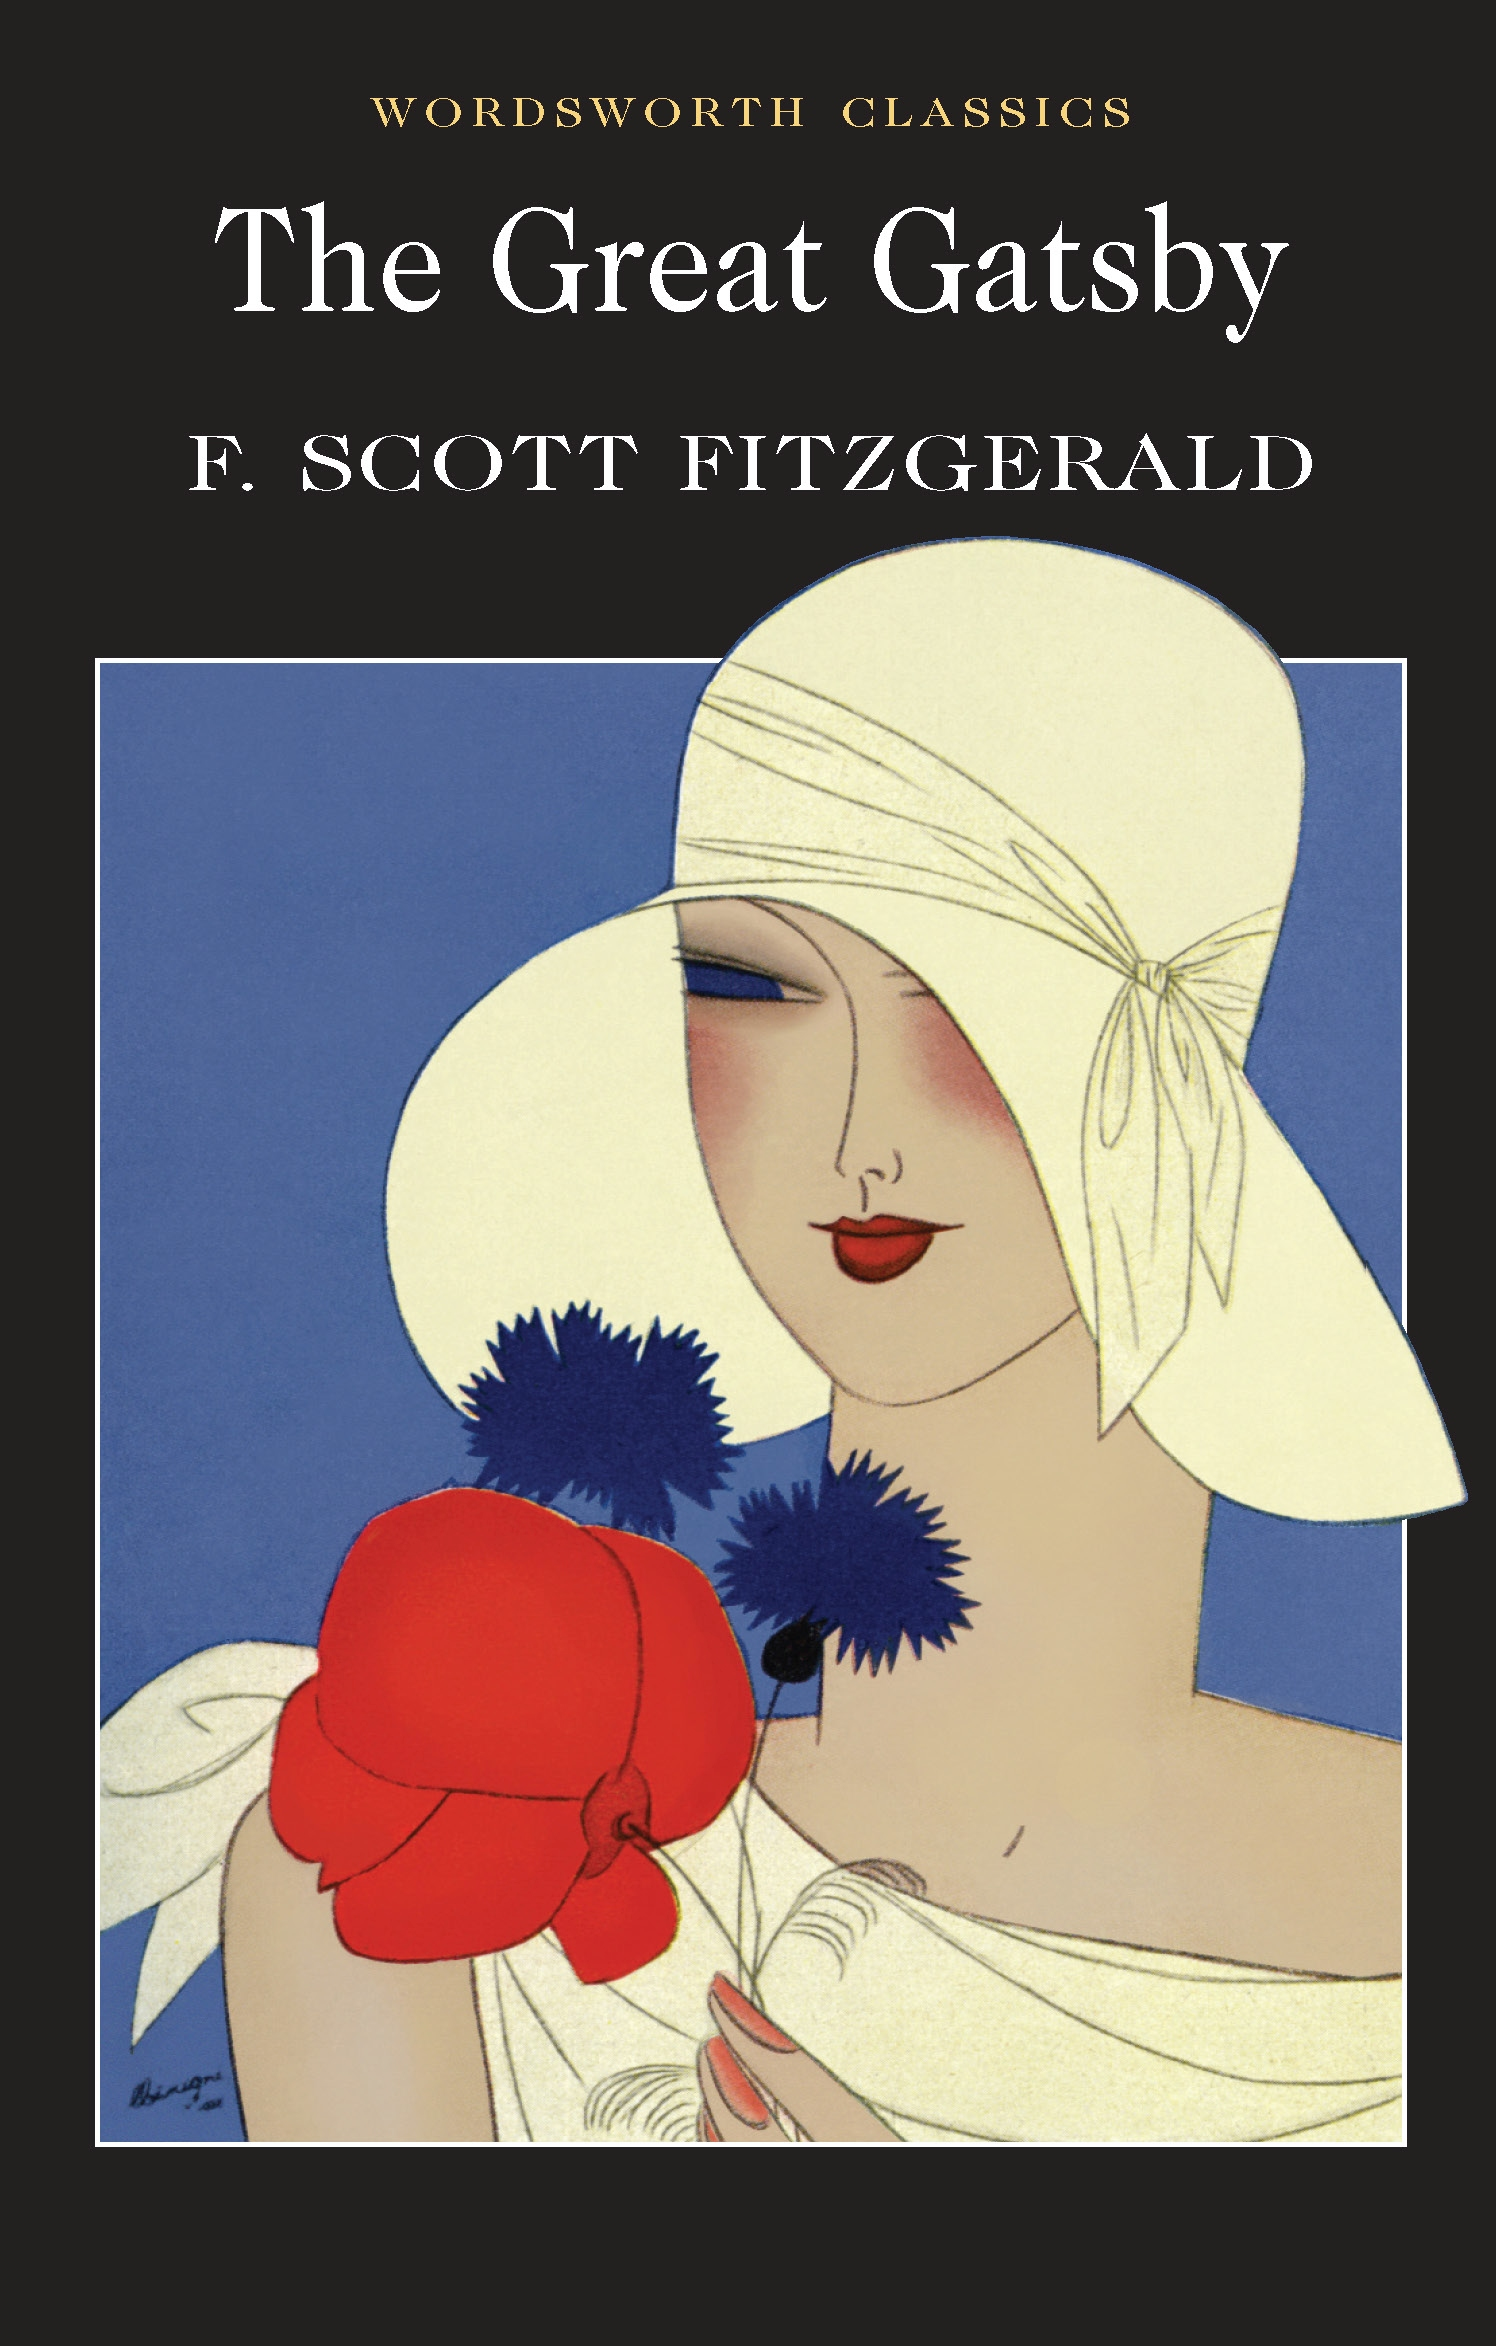 an analysis of fitzgeralds novel the great gatsby Need help with chapter 4 in f scott fitzgerald's the great gatsby check out our revolutionary side-by-side summary and analysis.